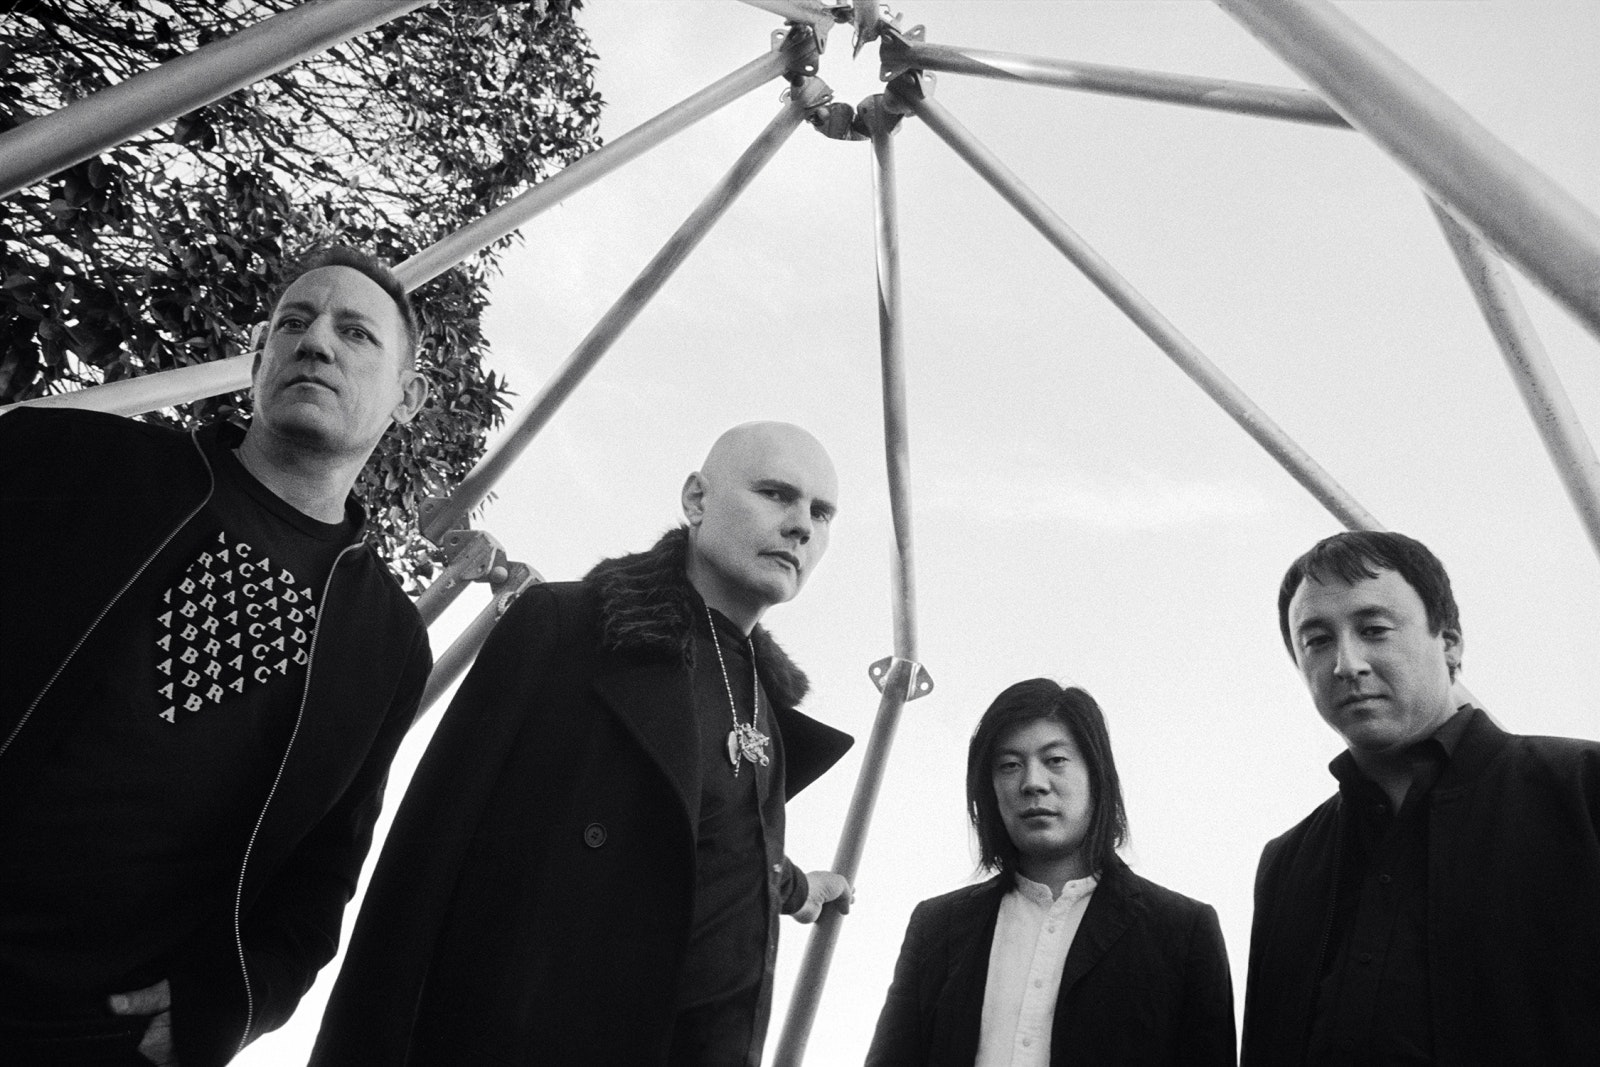 The Smashing Pumpkins have announced a London show